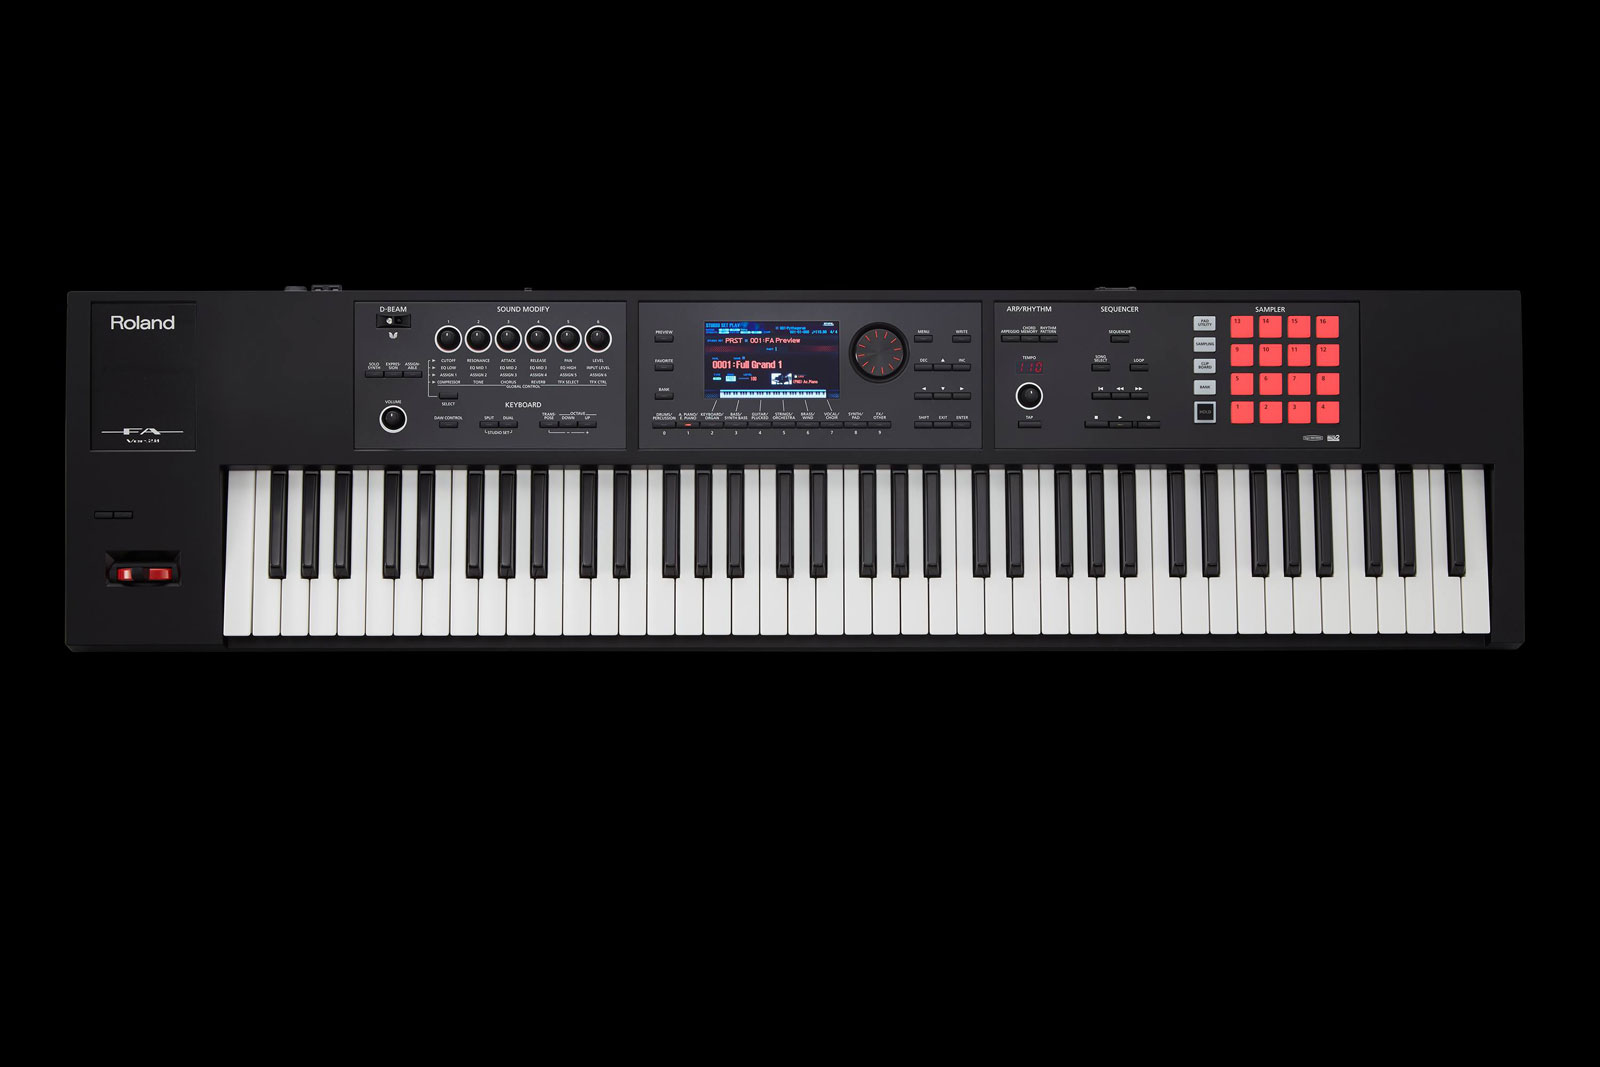 roland ax synth bk electronic keyboard buy online free. Black Bedroom Furniture Sets. Home Design Ideas